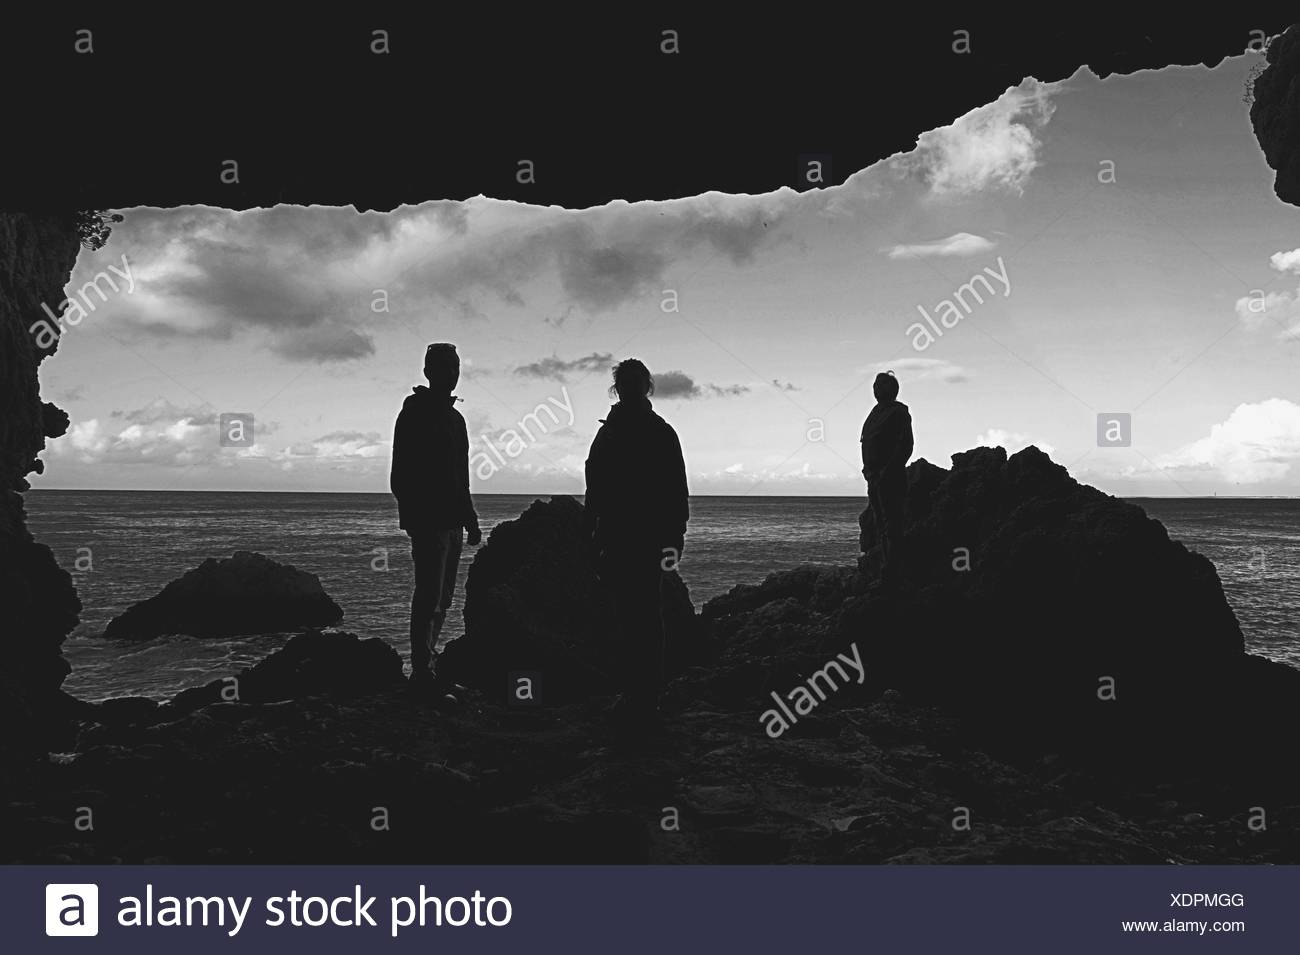 Silhouette People Standing At Beach By Rocks - Stock Image